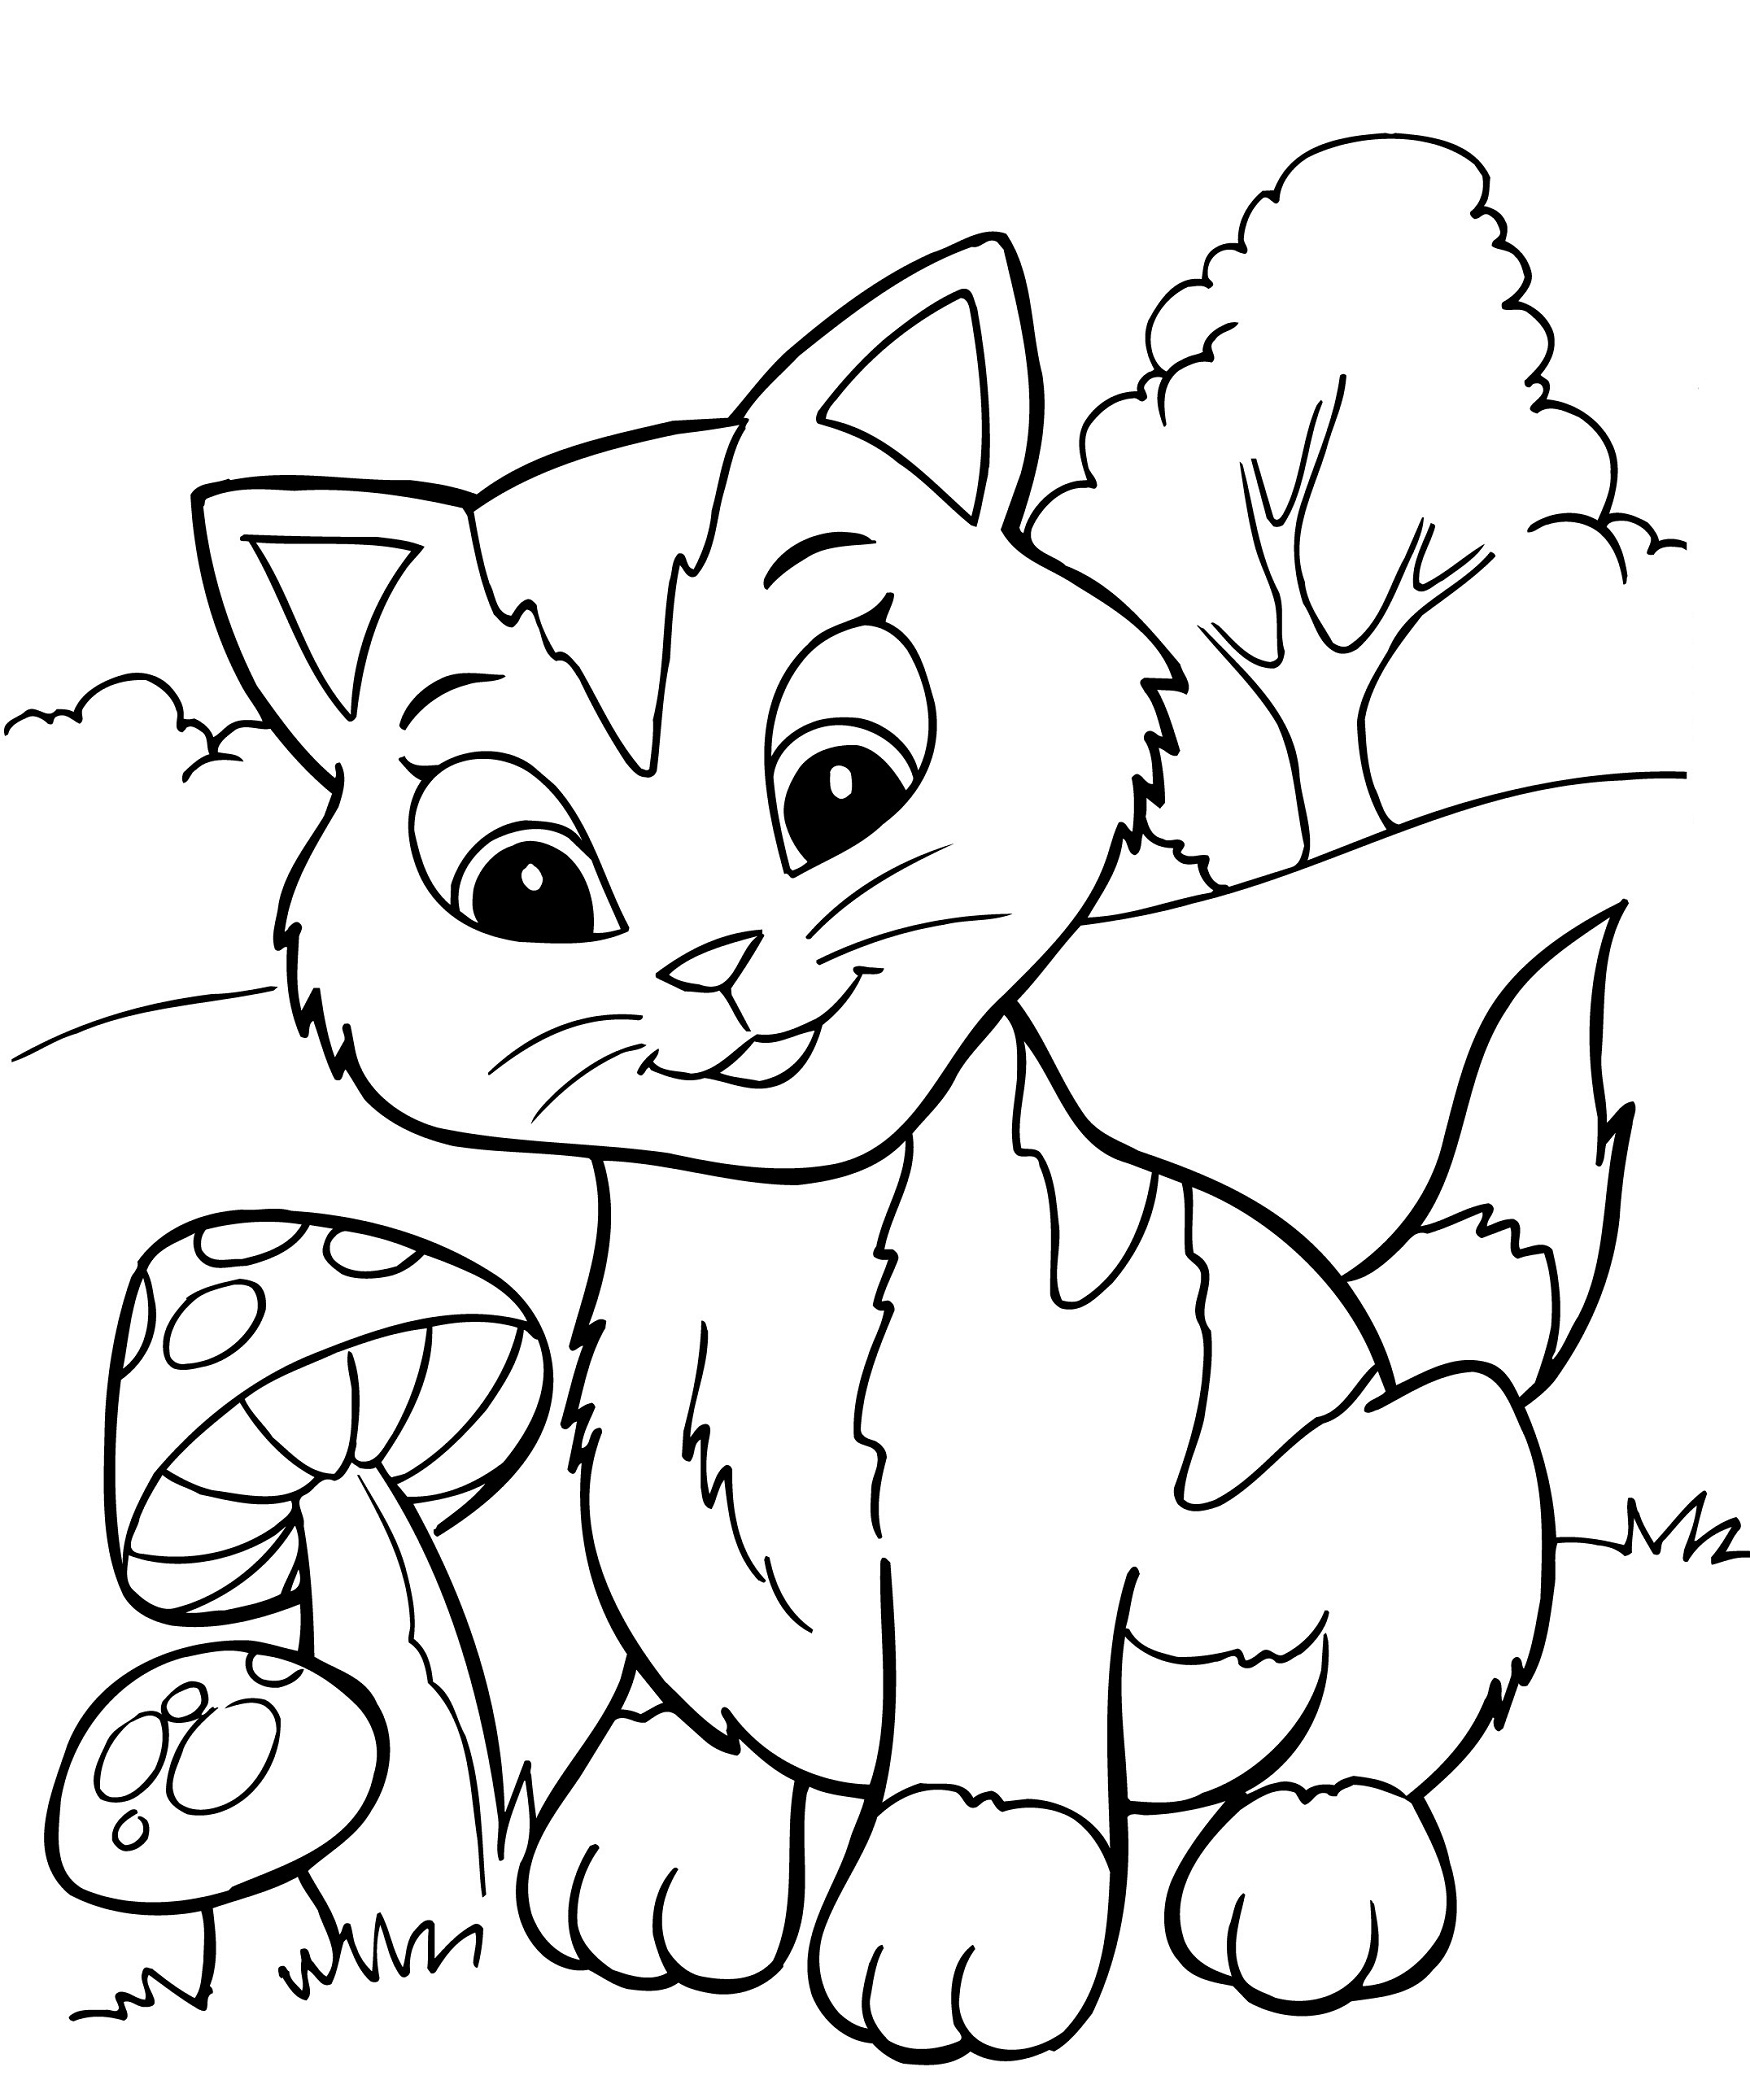 cats pictures to color cat to print for free rainbow cat cats kids coloring pages pictures color to cats